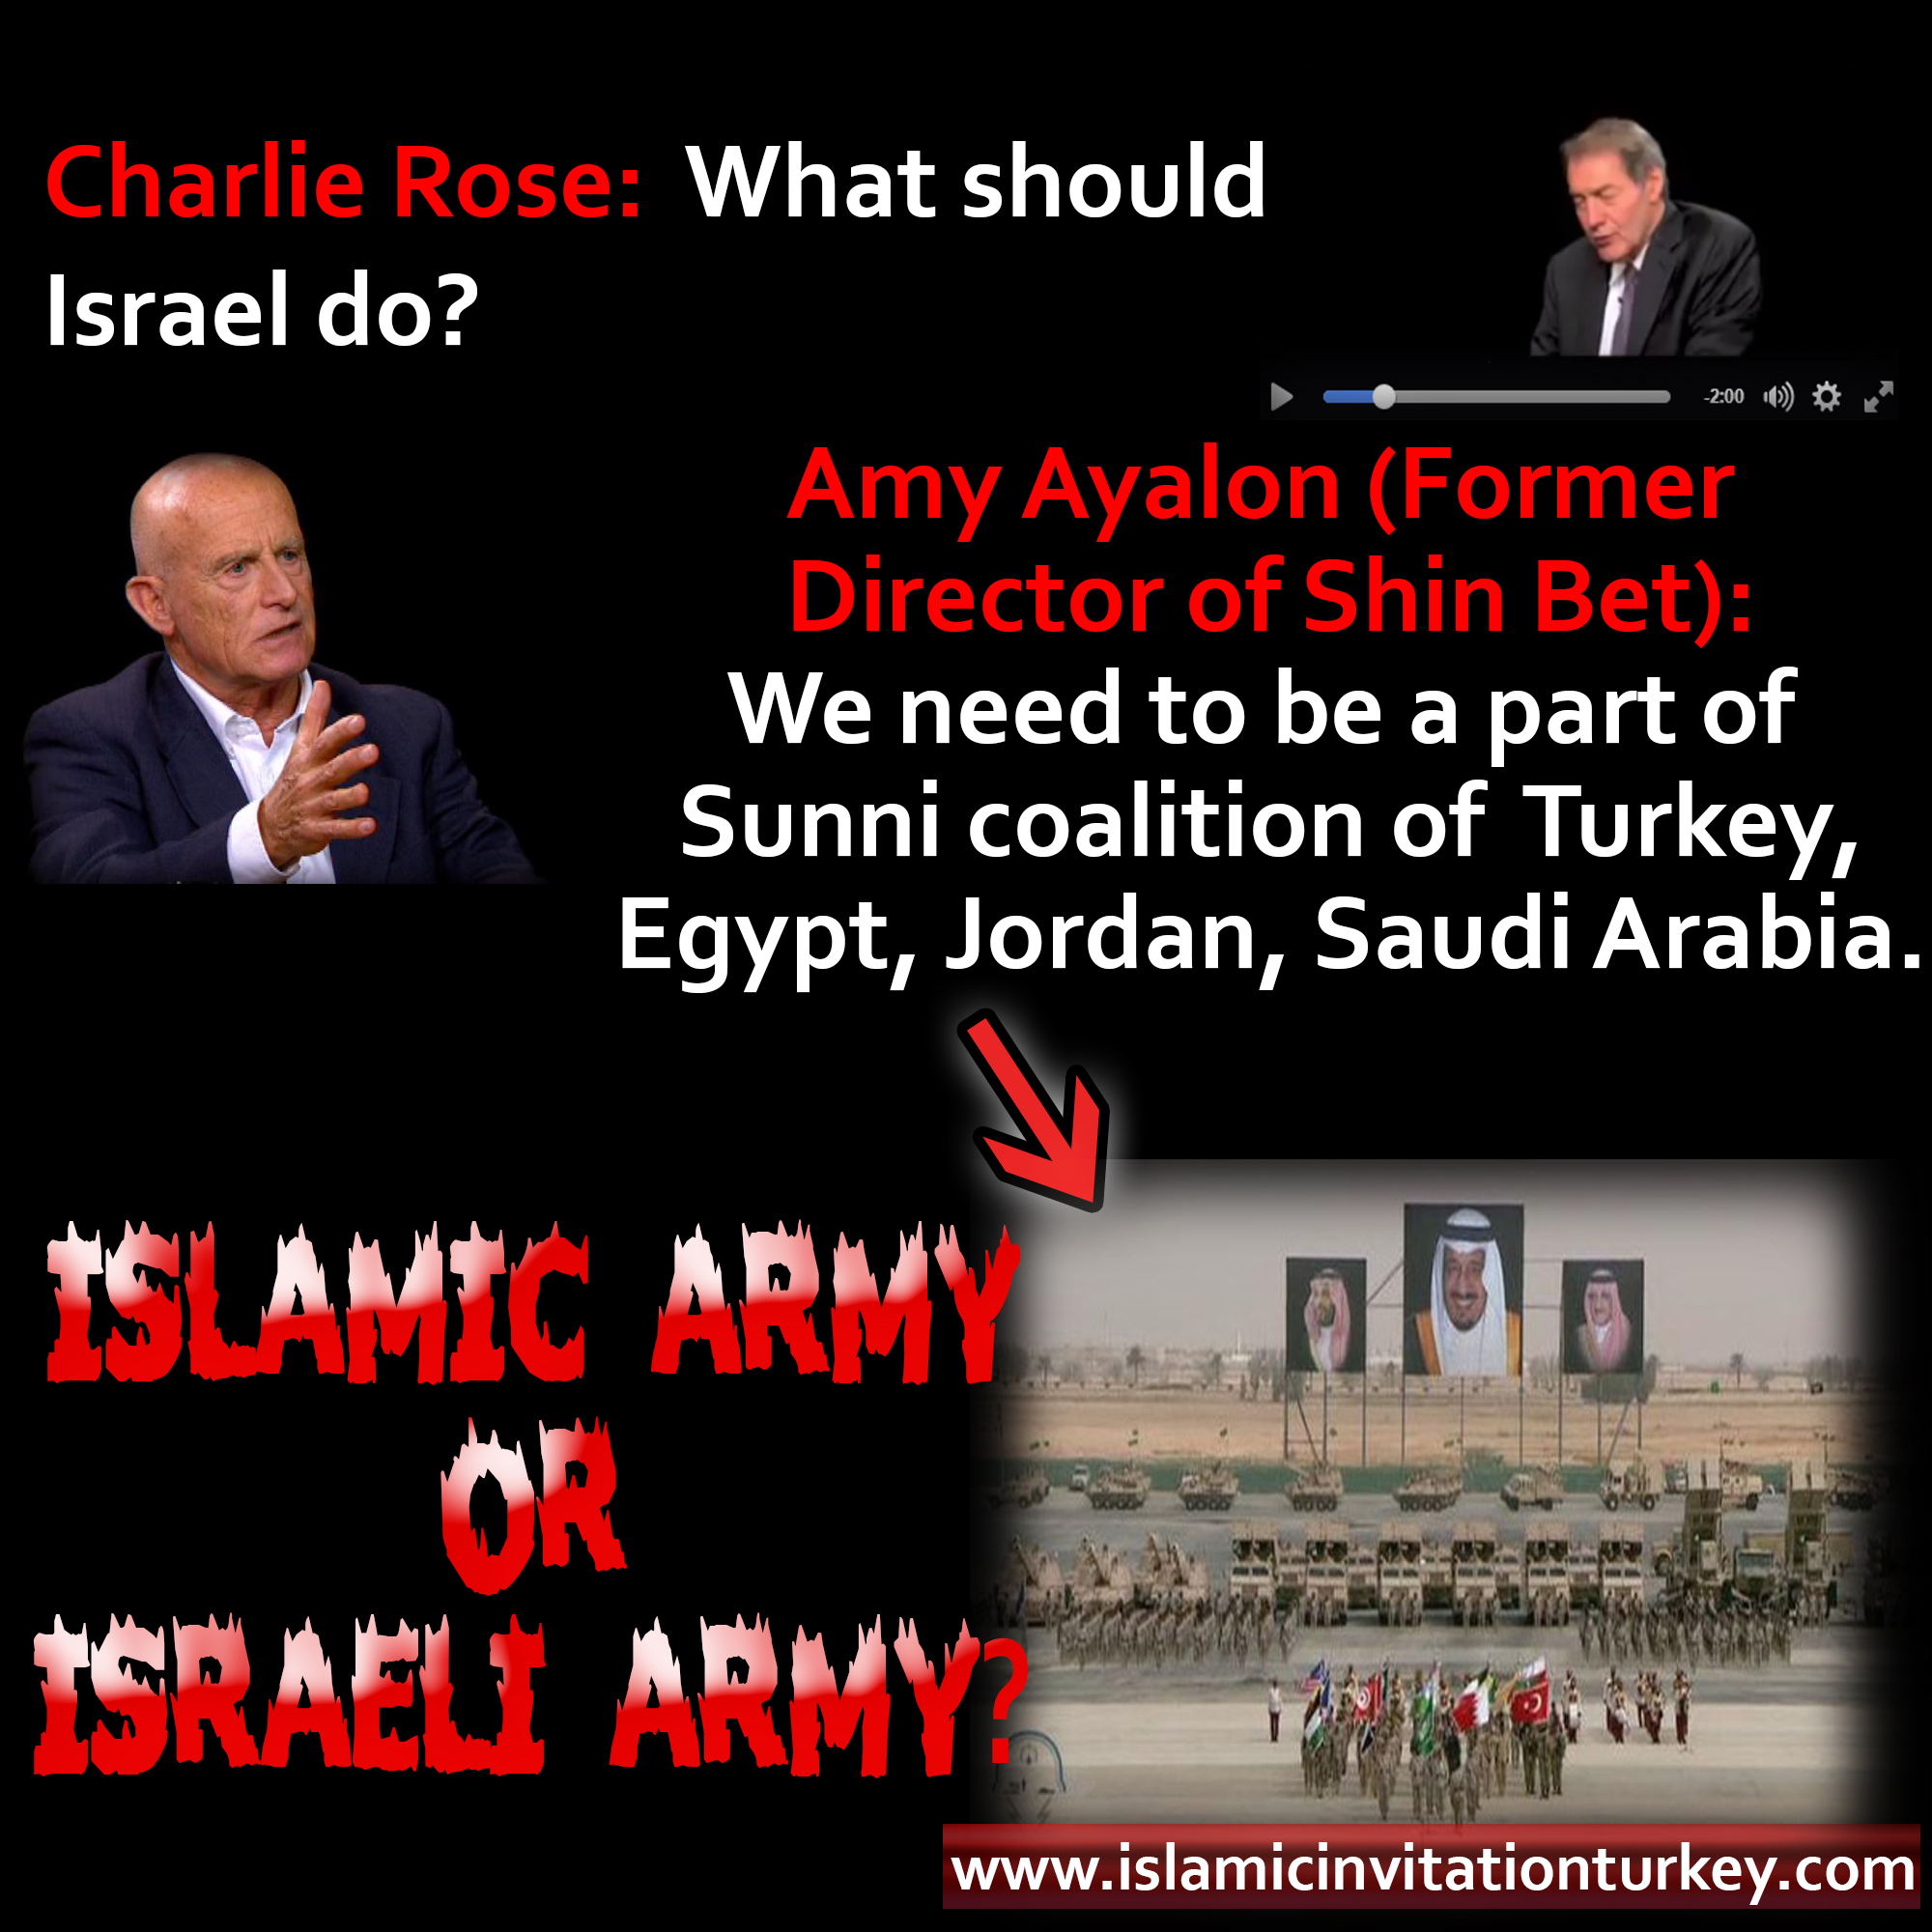 mohammad army or israeli army